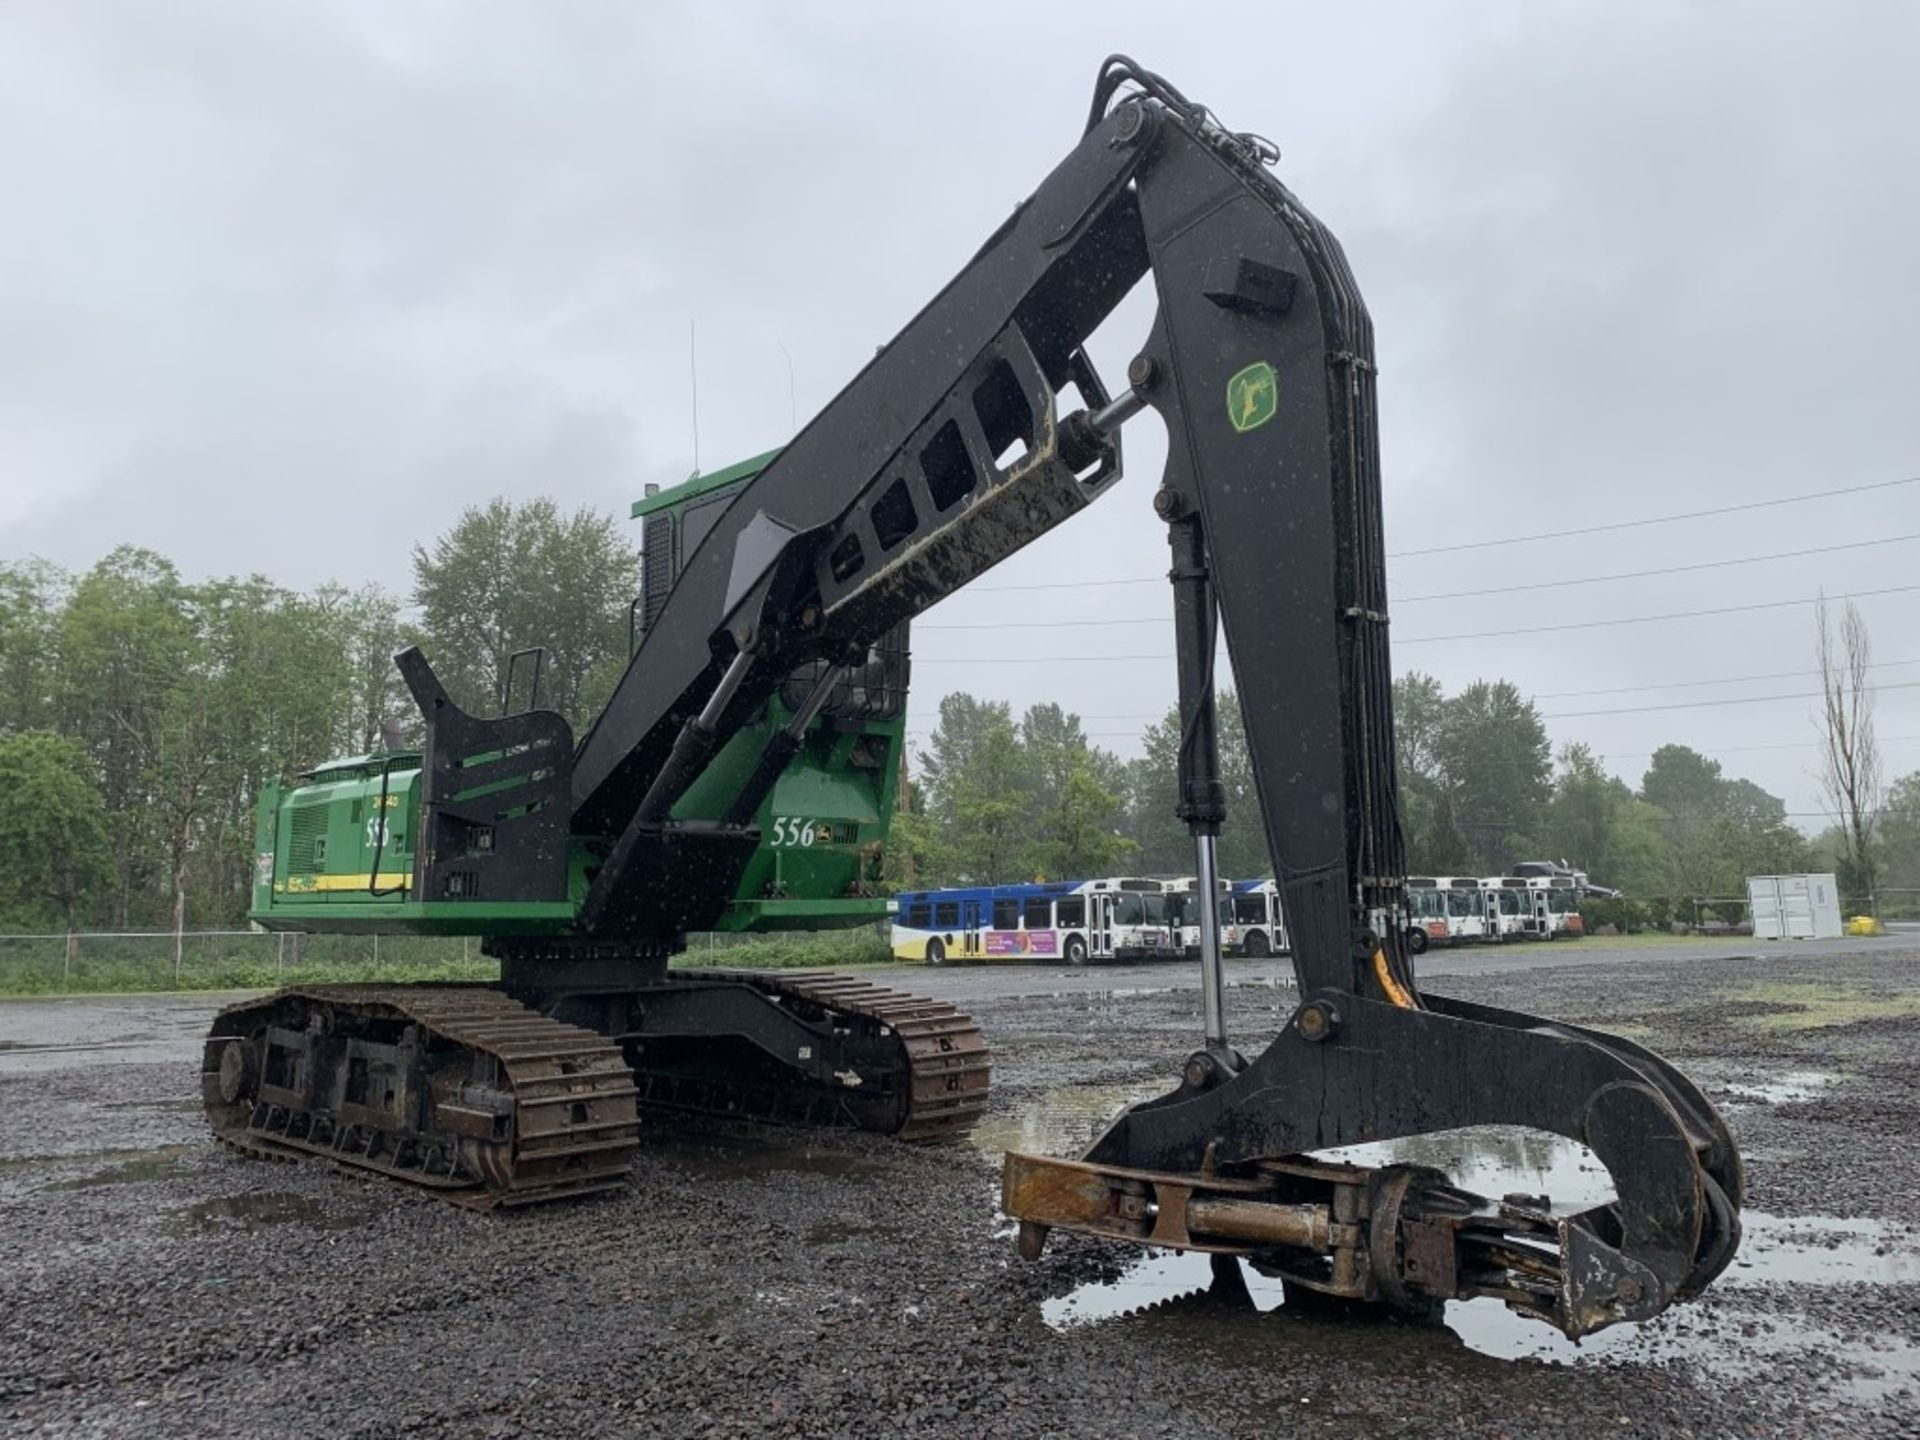 Lot 41 - 2012 John Deere 2454D Log Loader